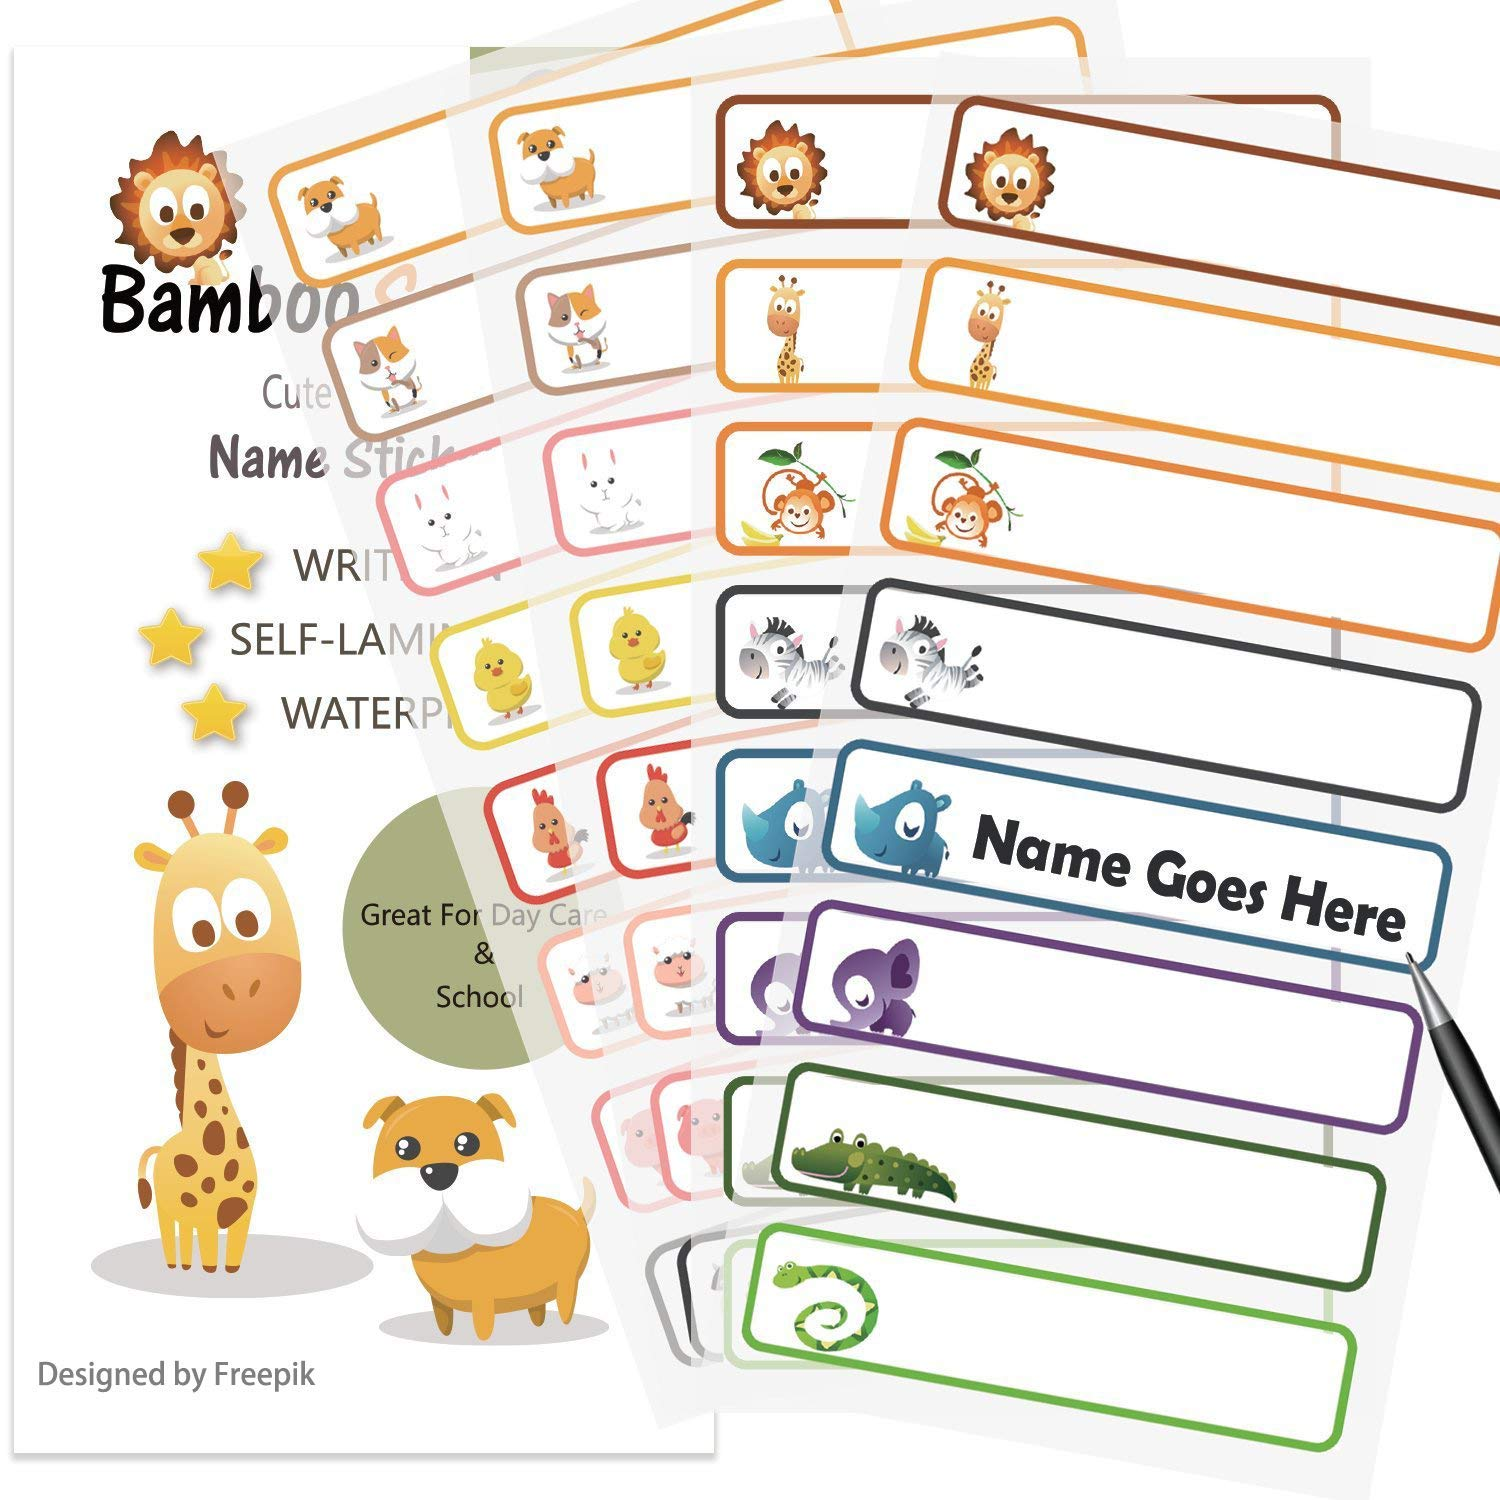 72 BABY POOH Custom Waterproof Name Labels-SCHOOL,NURSERY Buy 5 get 1 FREE